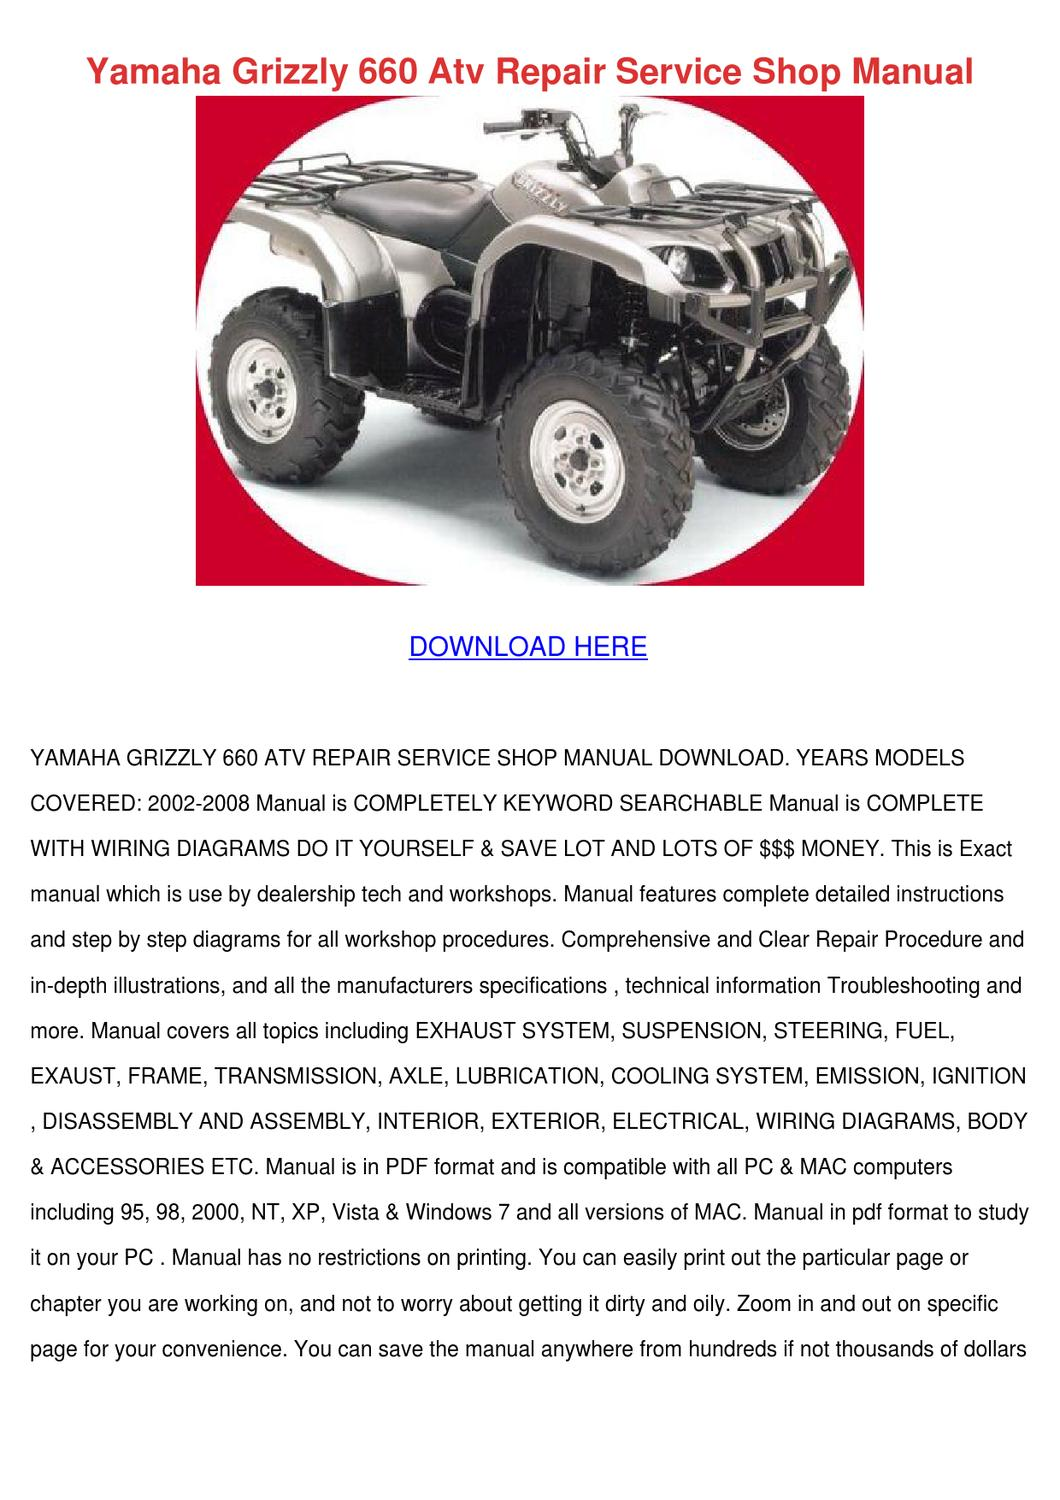 hight resolution of yamaha grizzly 660 atv repair service shop ma by gretchenfelder issuuyamaha grizzly 660 atv repair service